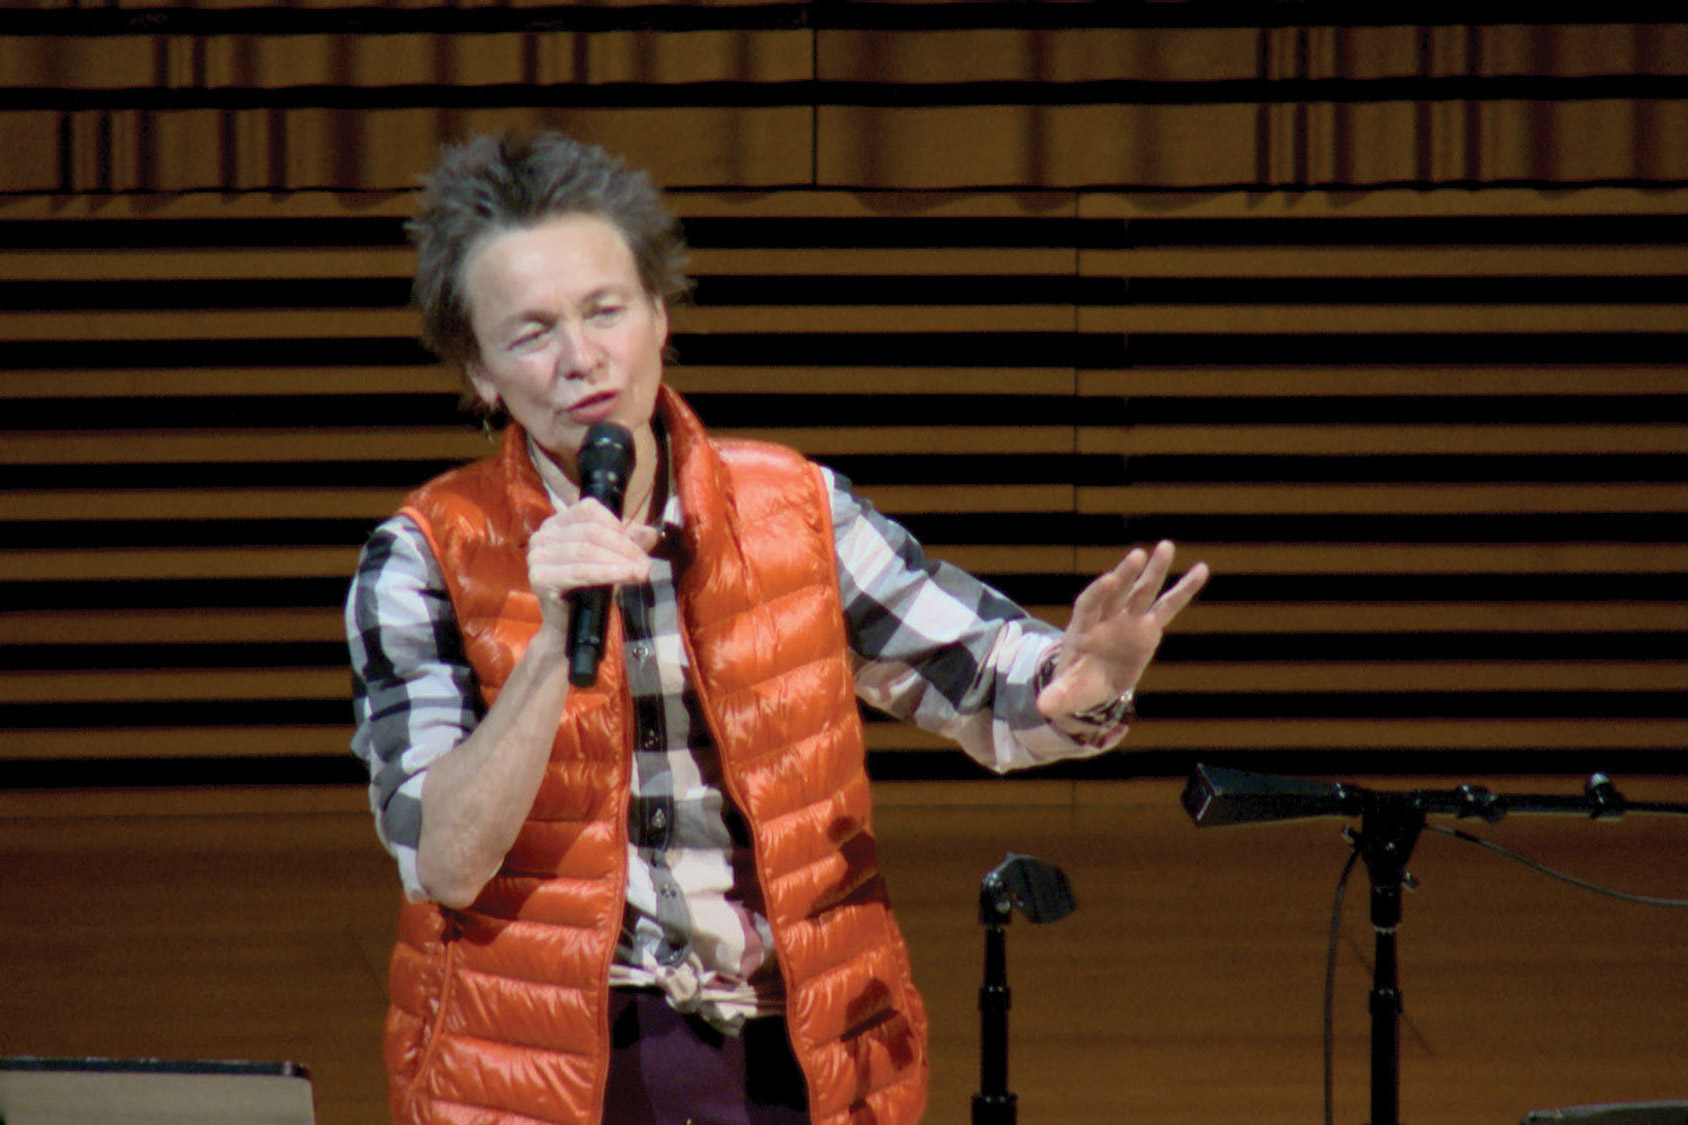 Laurie Anderson in the concert hall.